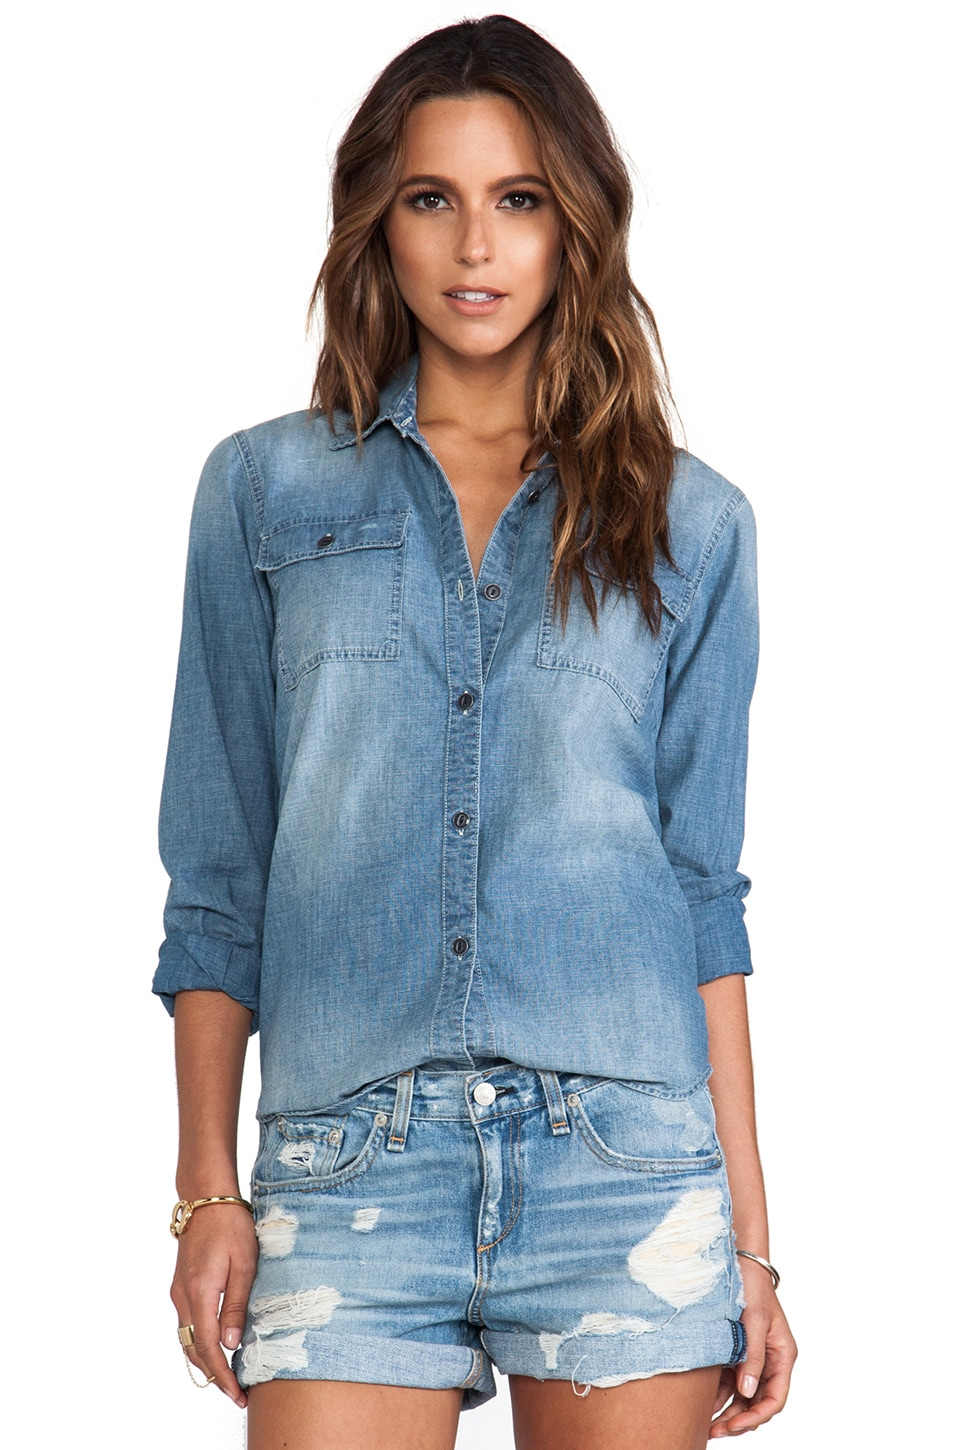 True Religion Utility Shirt in Chambray